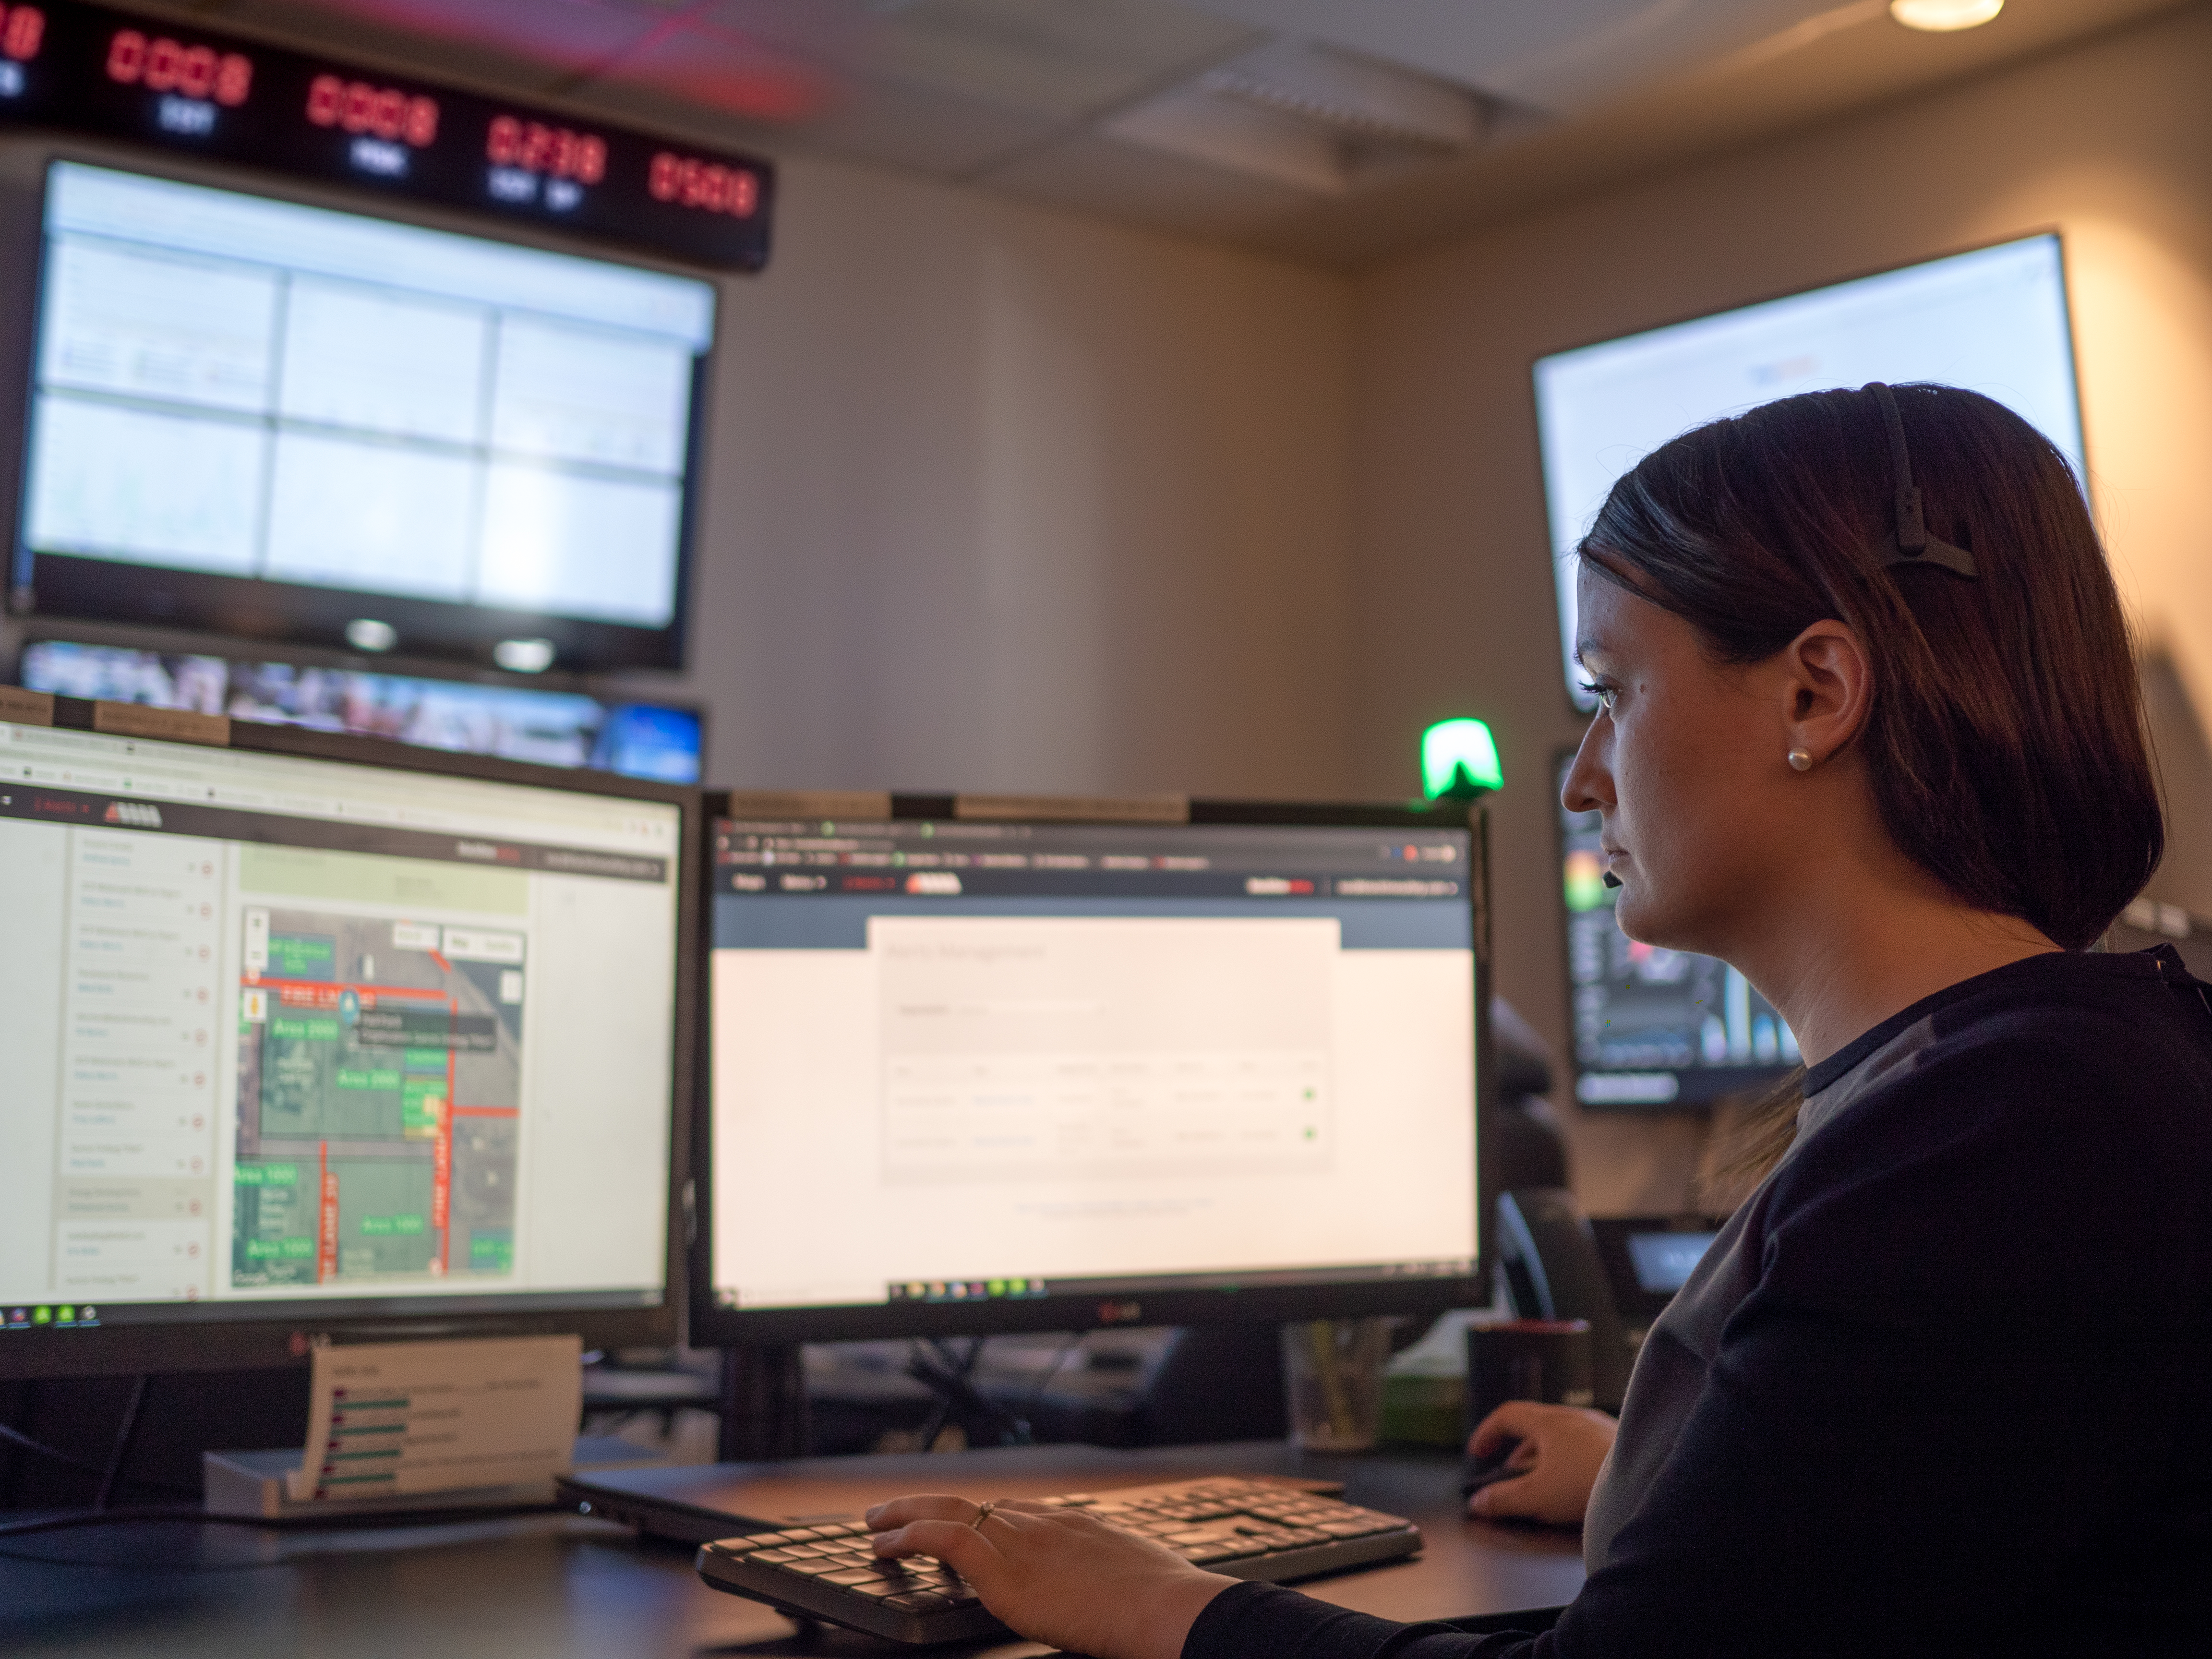 Safety Operations Center for gas detection and lone worker safety